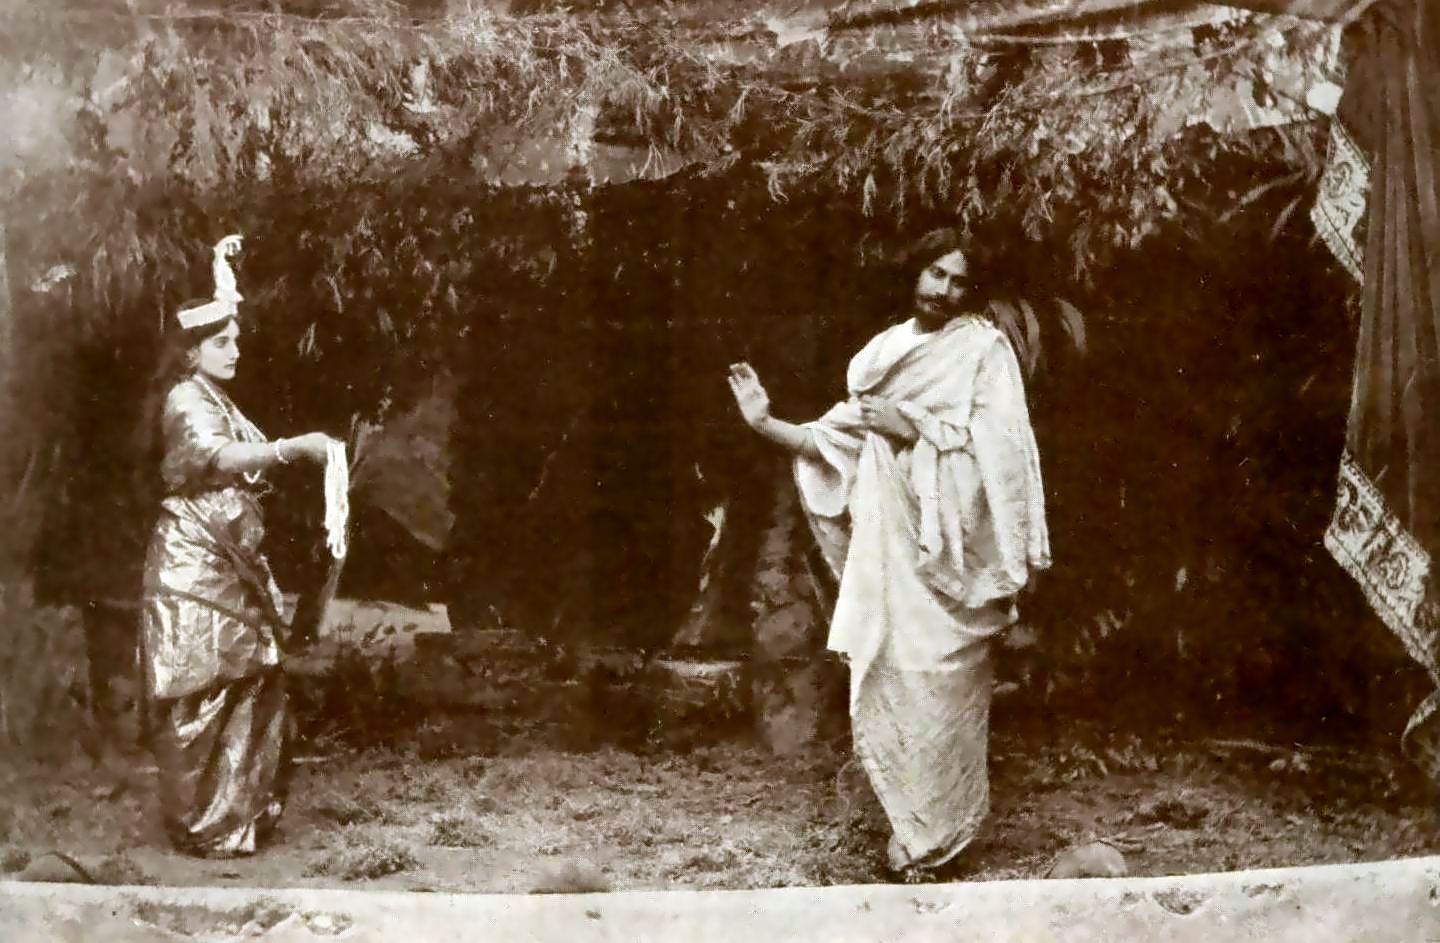 Tagore performing the title role in Valmiki Pratibha (1881) with his niece Indira Devi as the goddess Lakshmi; Image credit